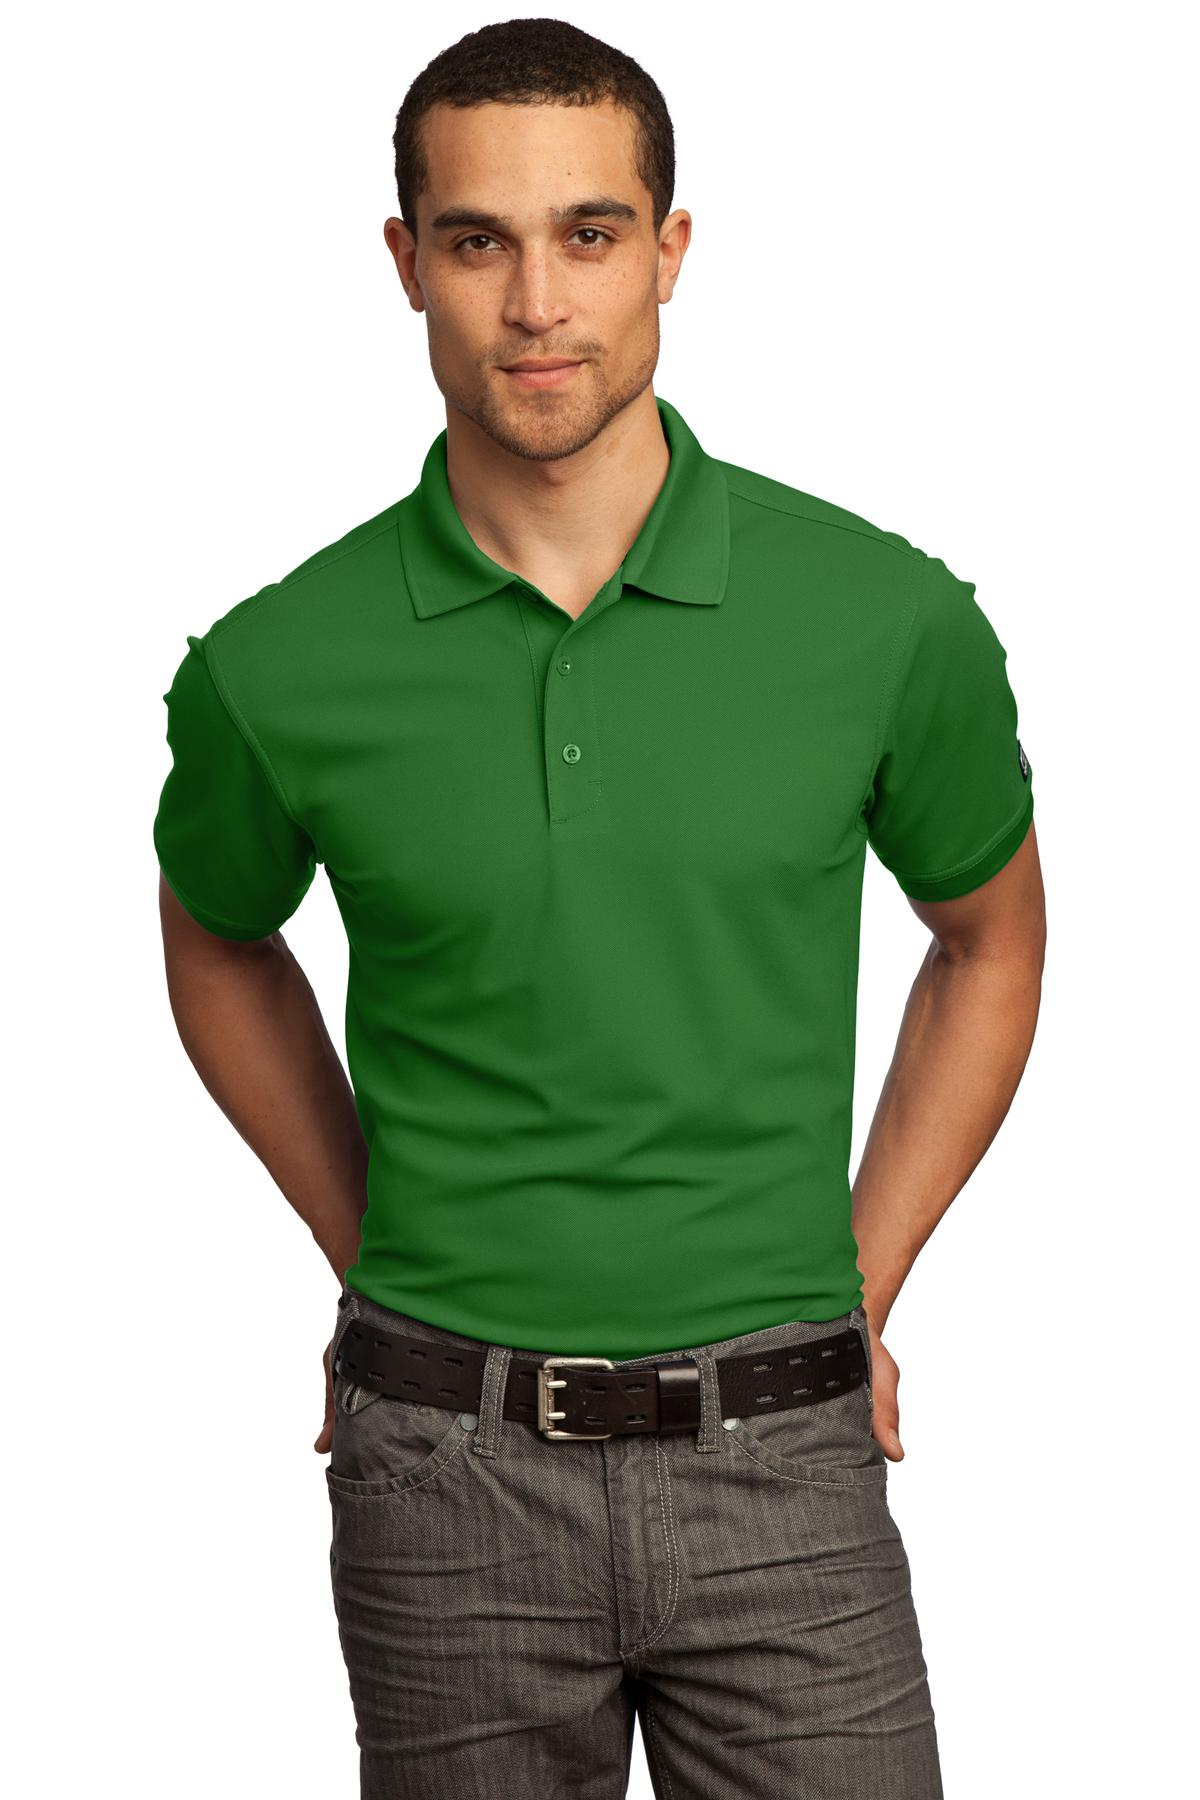 OGIO ®  - Caliber2.0 Polo. OG101 - Gridiron Green